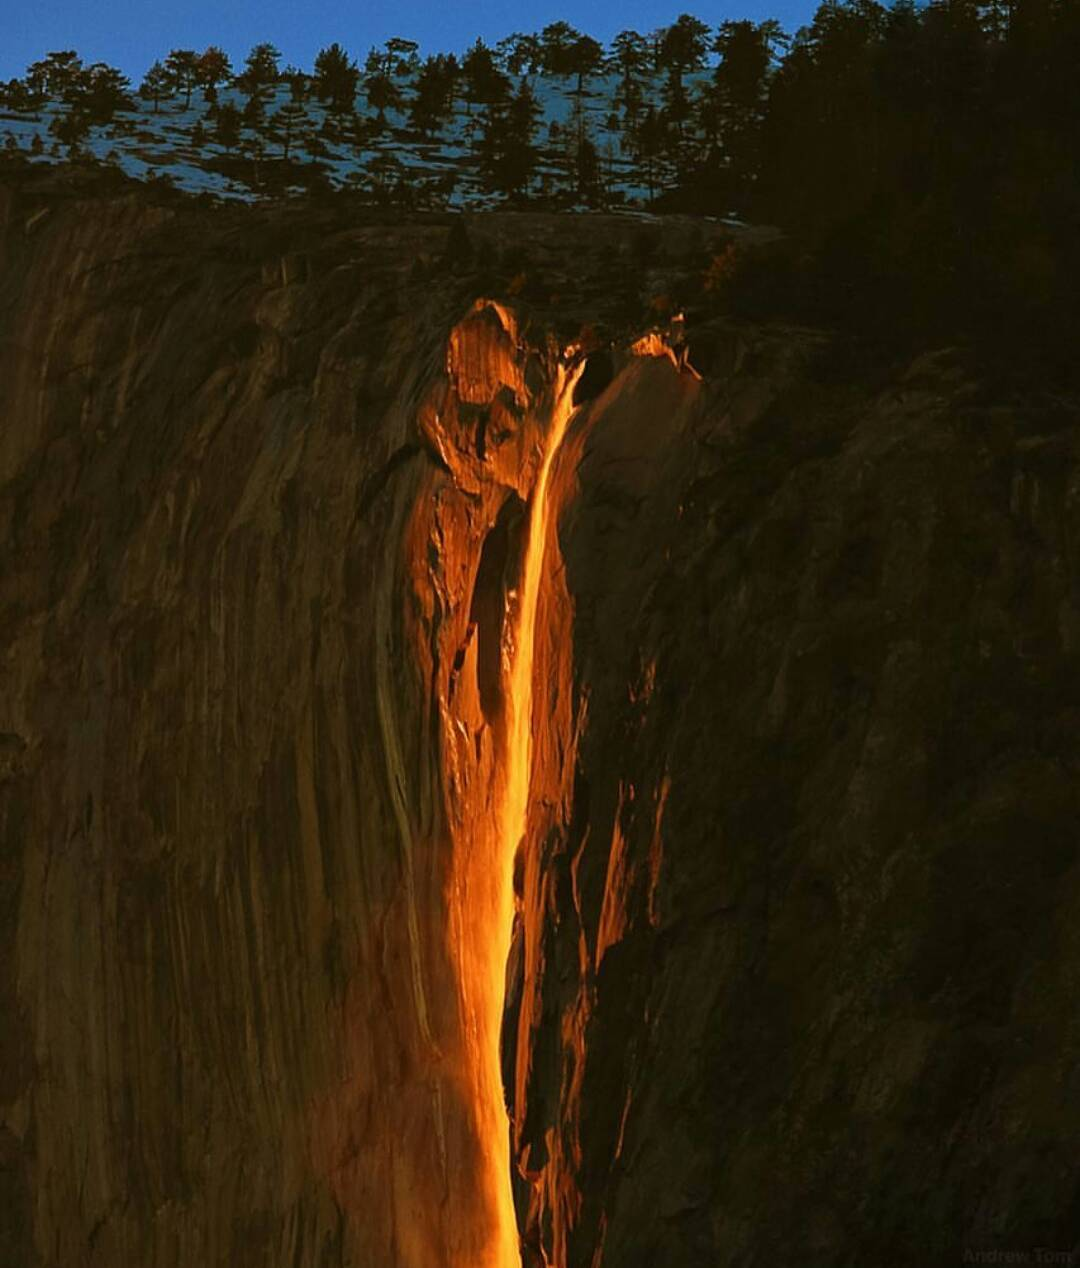 Stunning and Rare capture of Firefall in Yosemite National Park